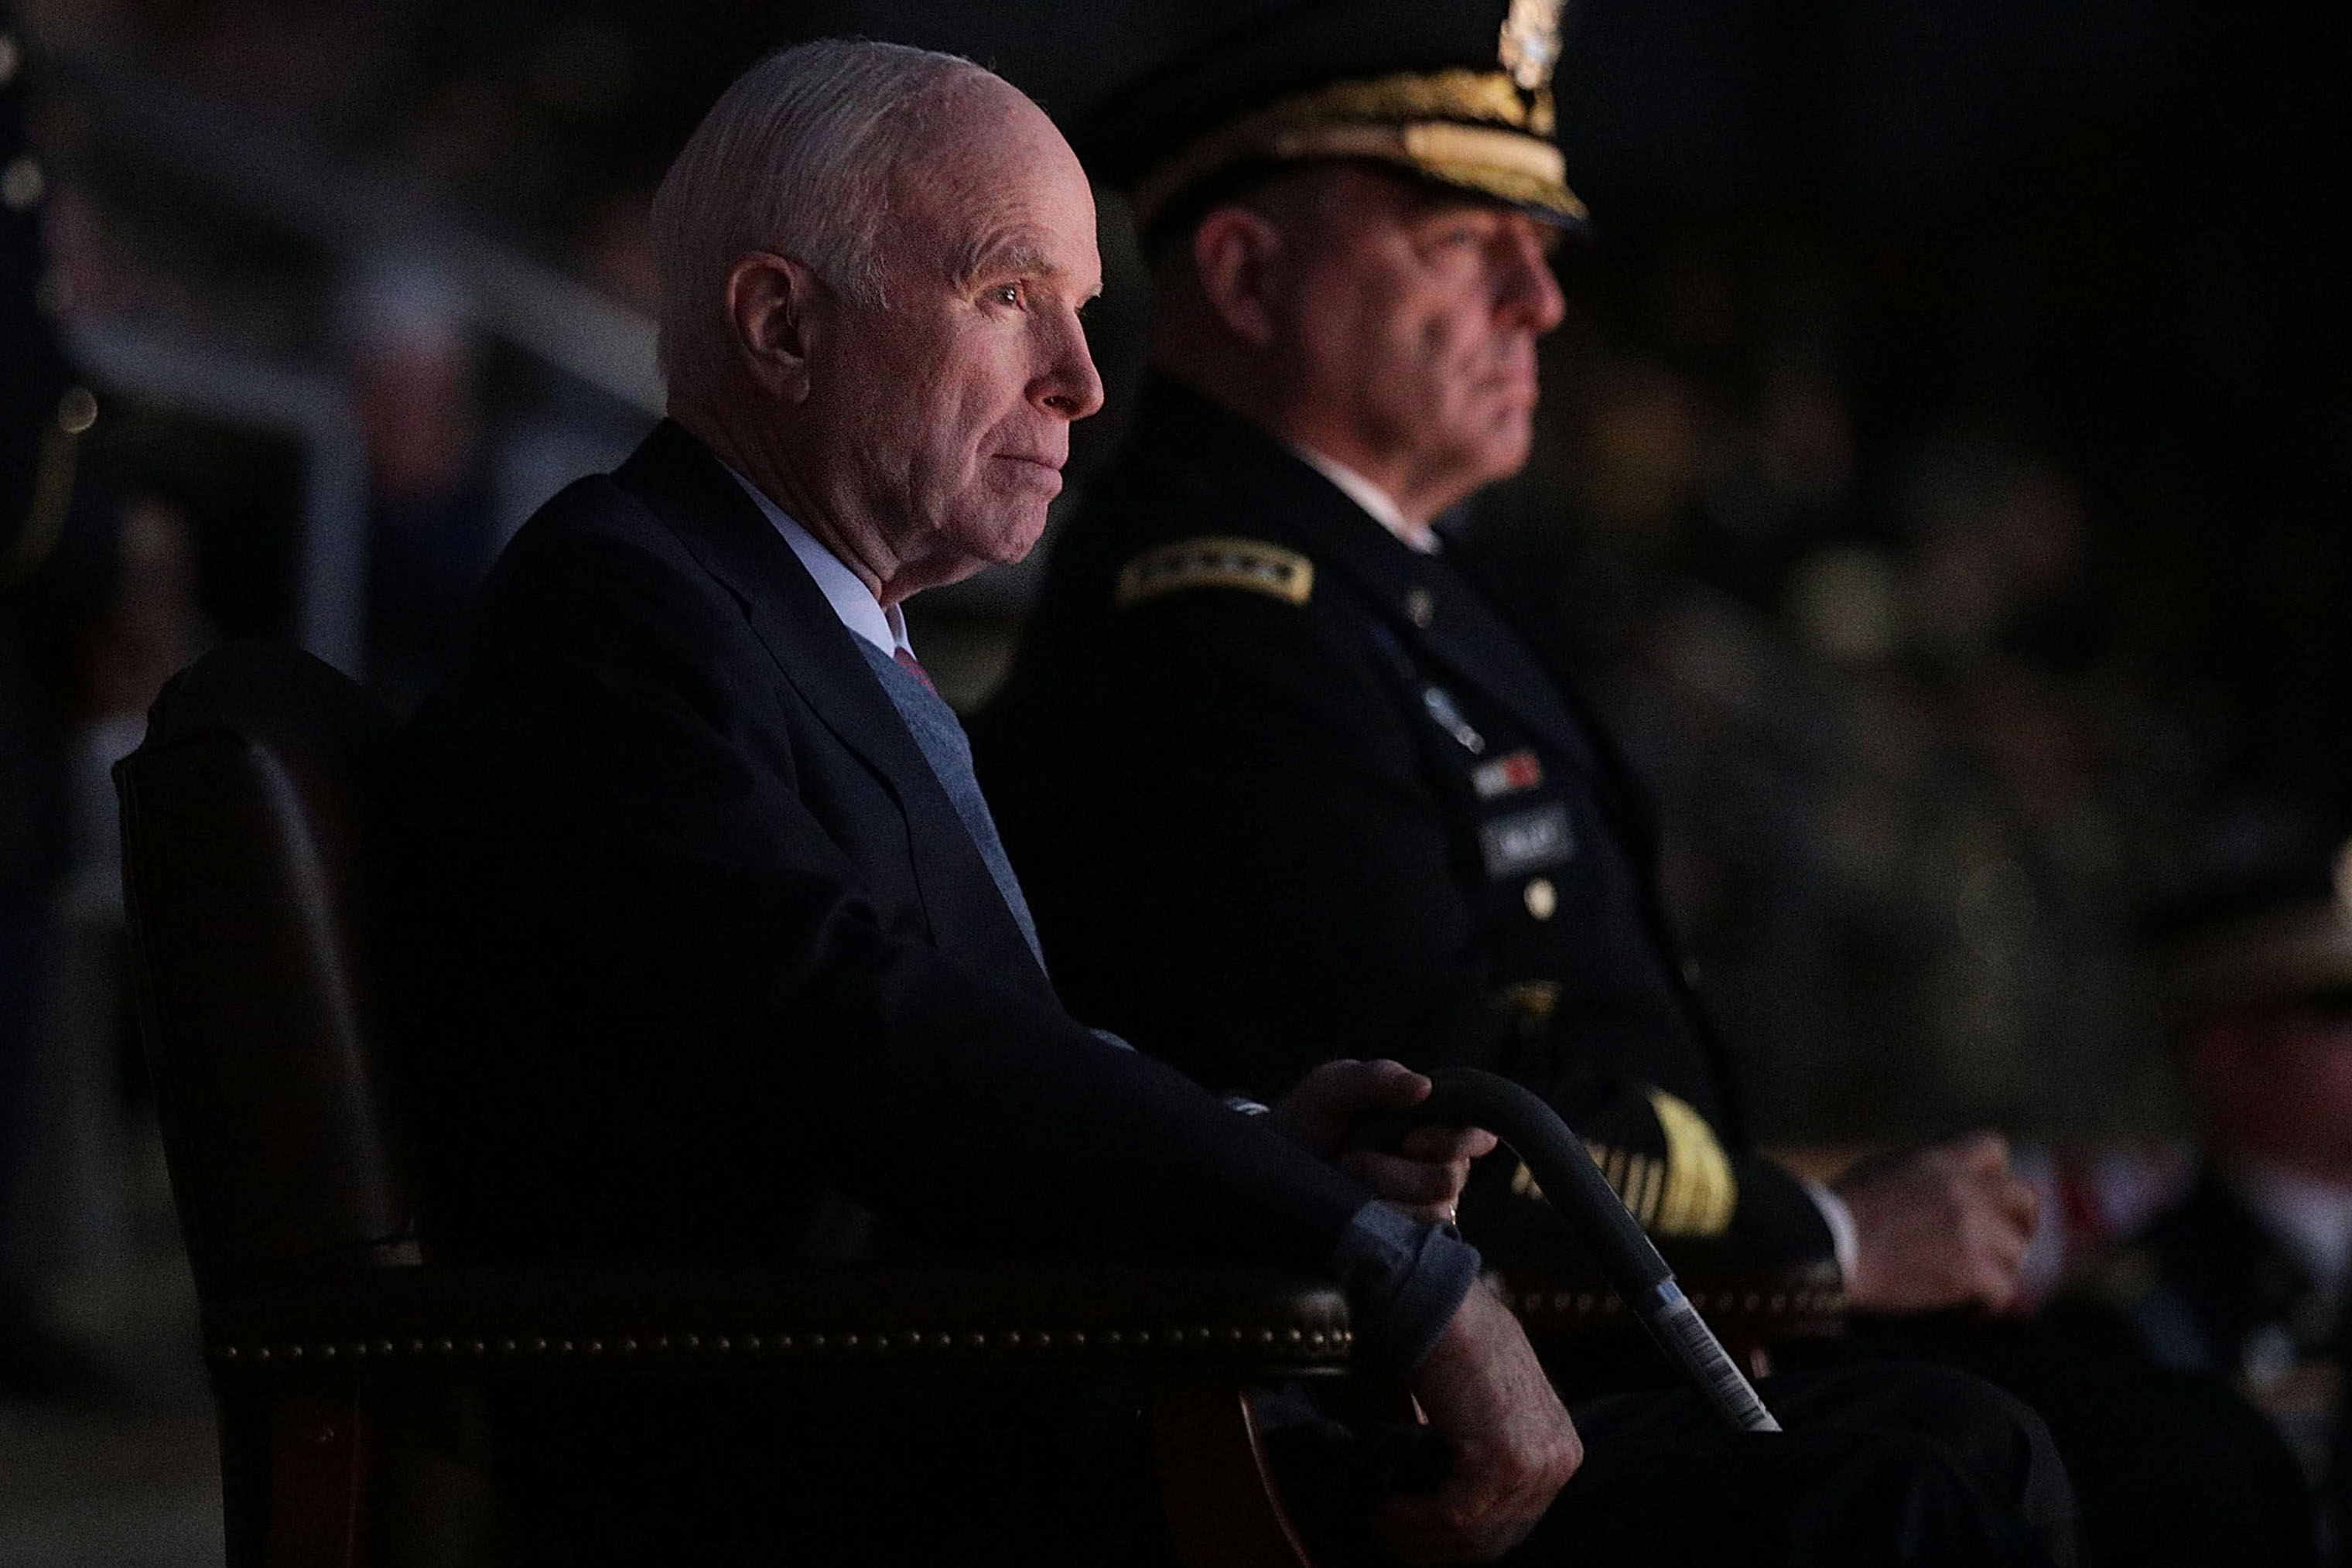 Staff Gen. Mark A. Milley and Sen. John McCain at Fort Myer where McCain was honored with the Outstanding Civilian Service Medal for over 63 years of dedicated service to the nation and the U.S. Navy on Nov. 14, 2017.